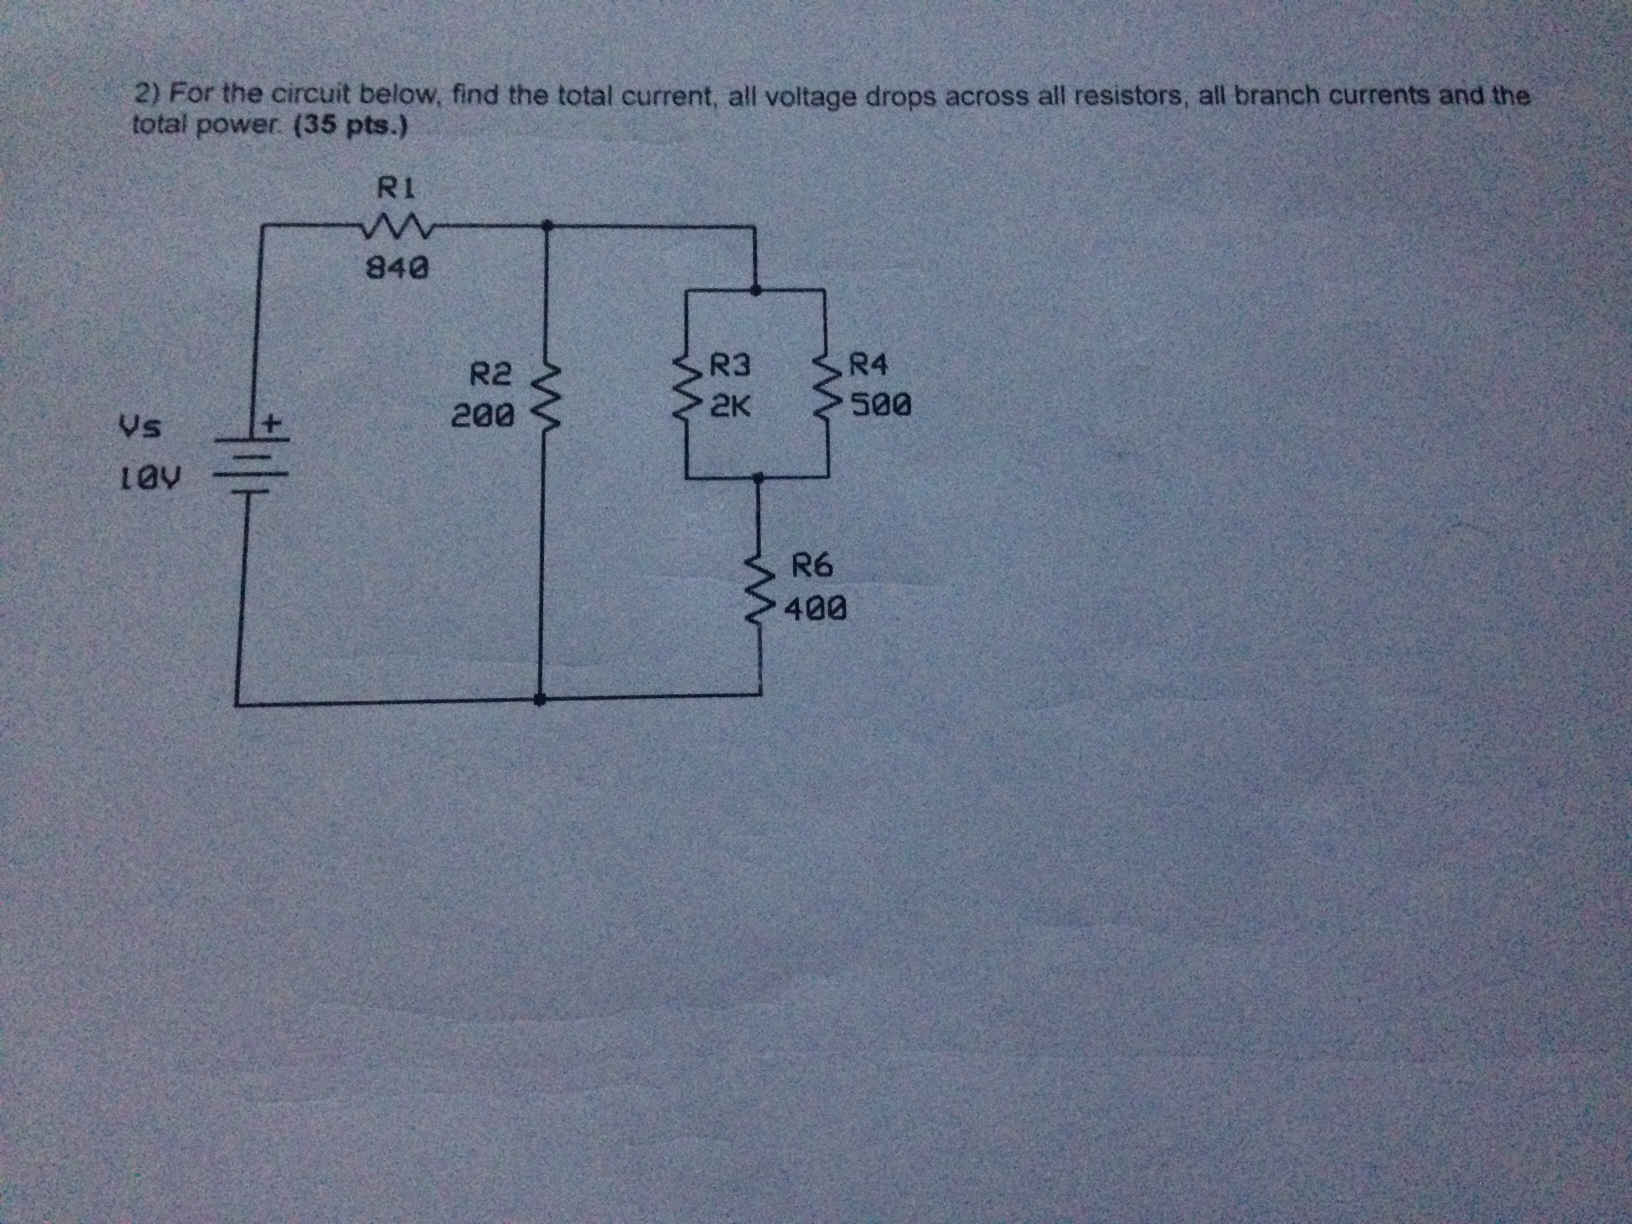 For the circuit below, find the total current, all